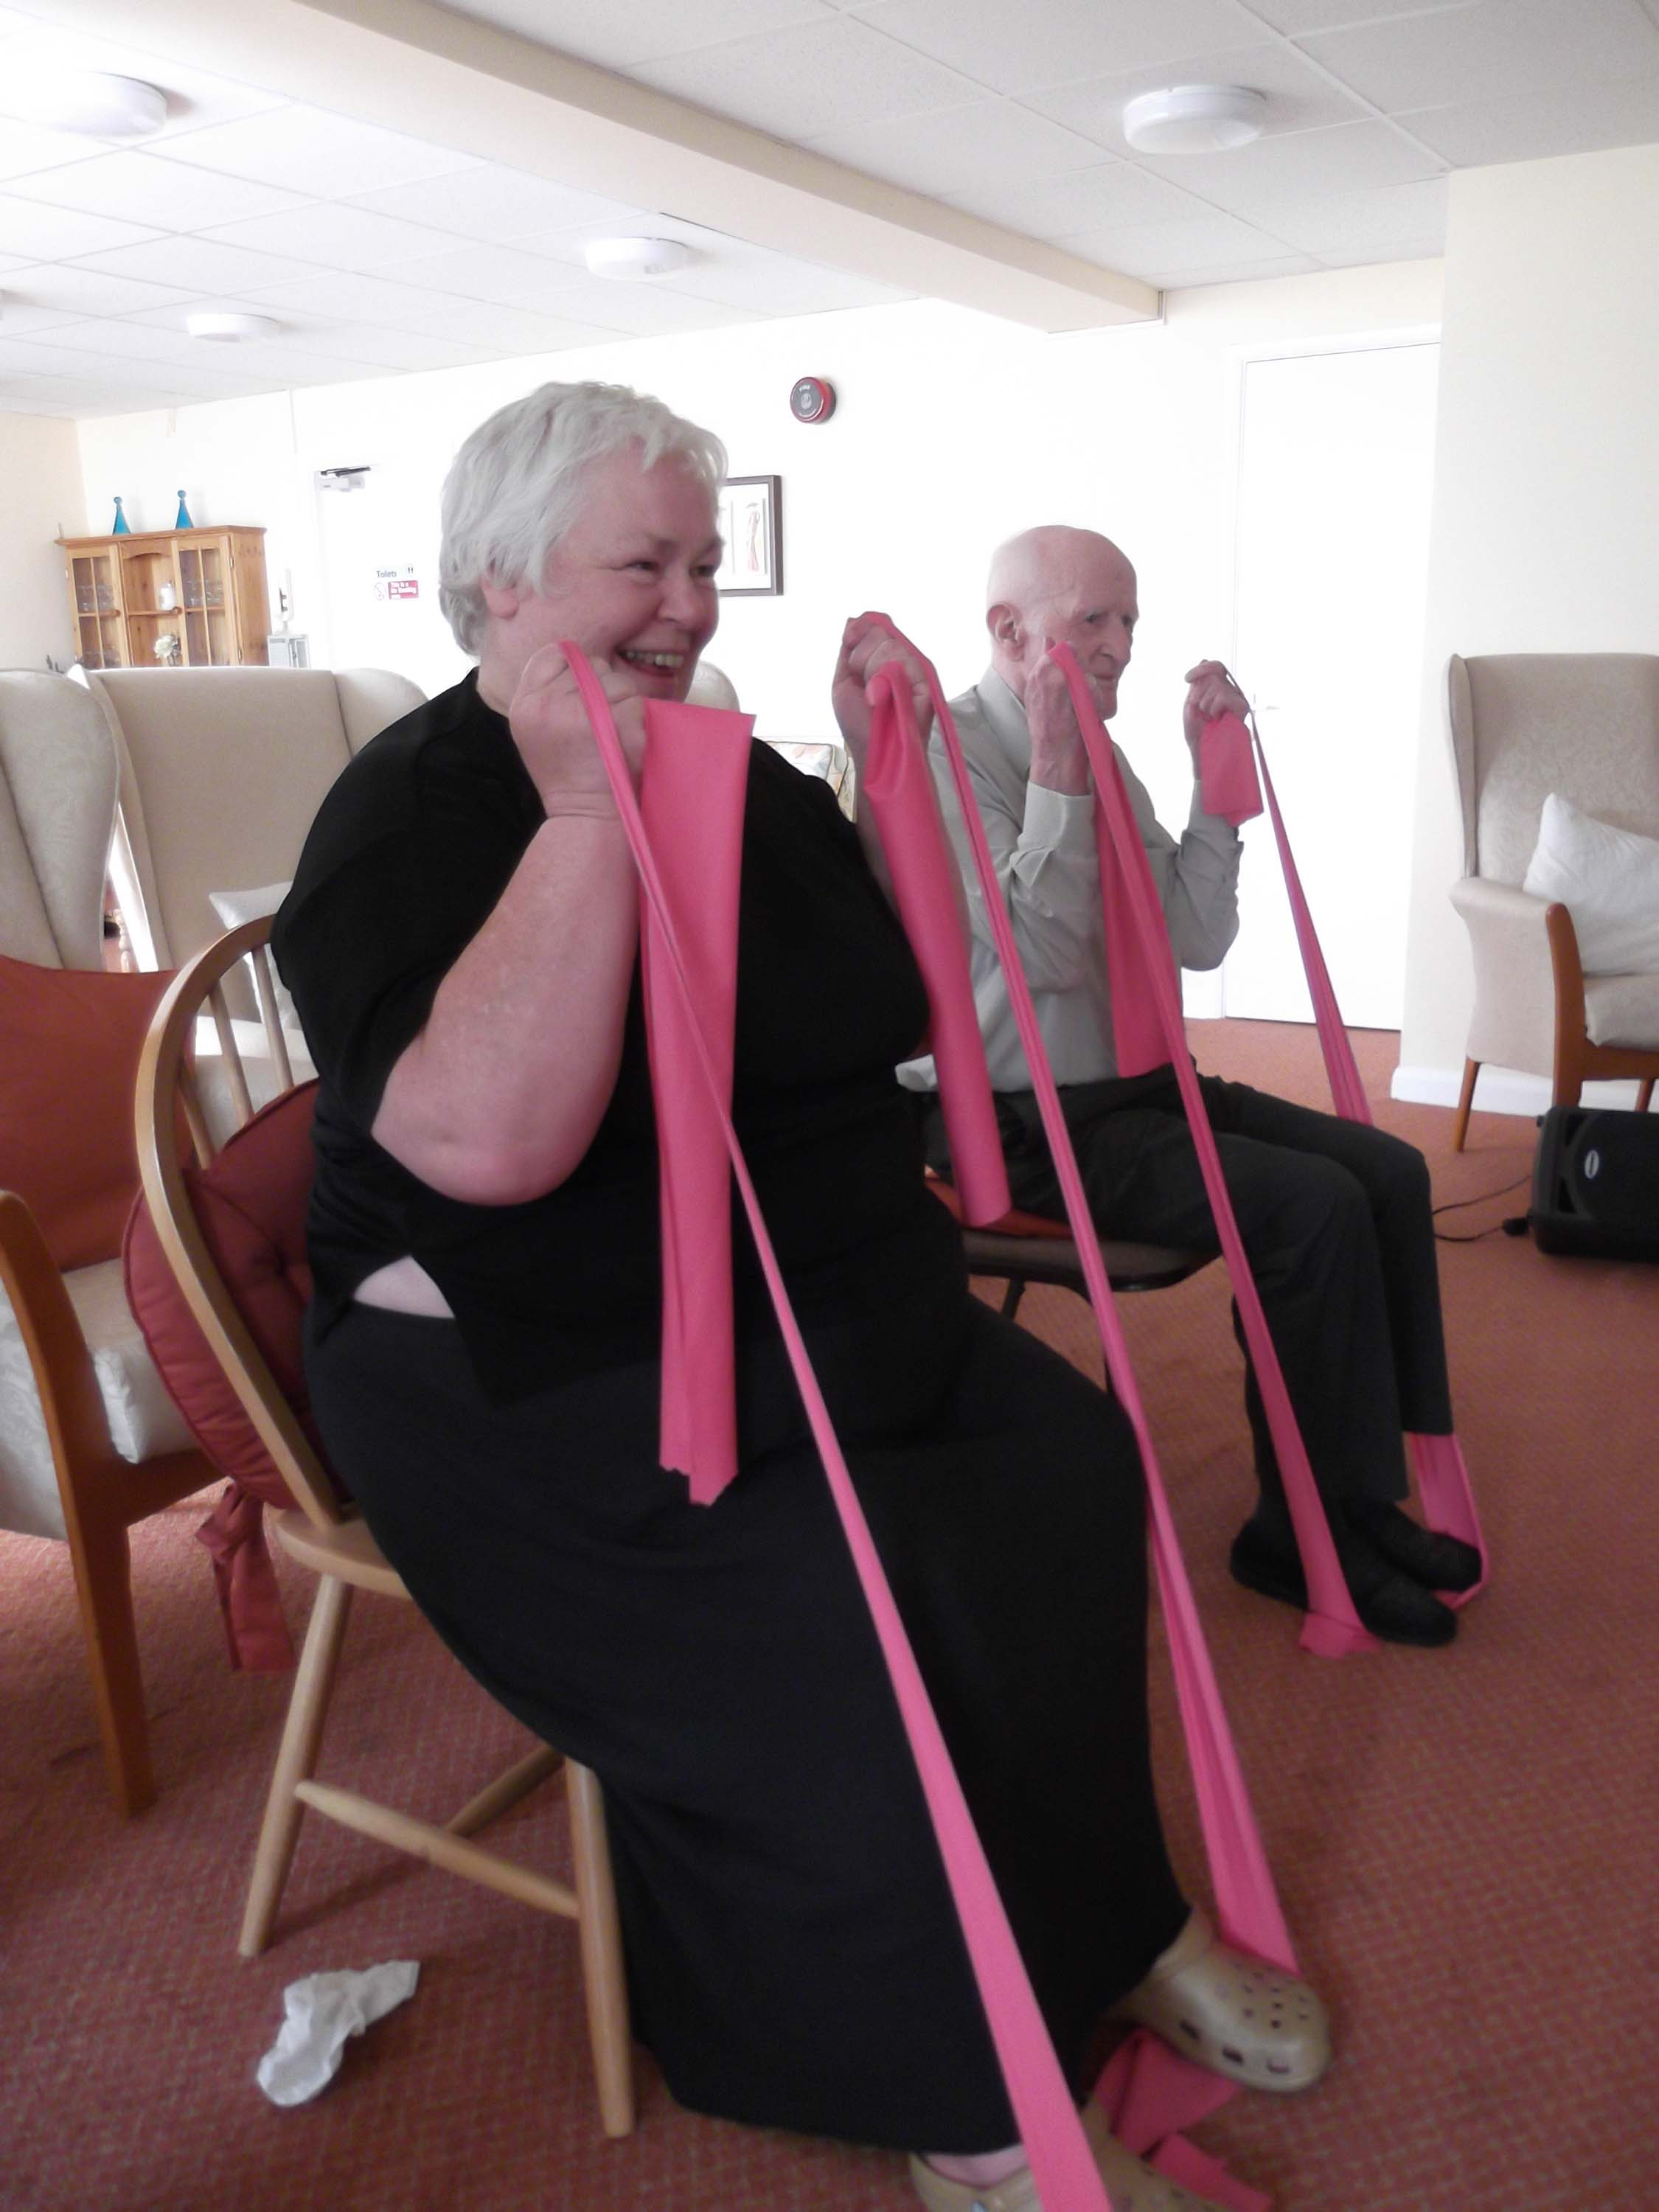 Chair exercises for seniors - Functional Exercise Helping Seniors Stay Independent Faith Health Wellness